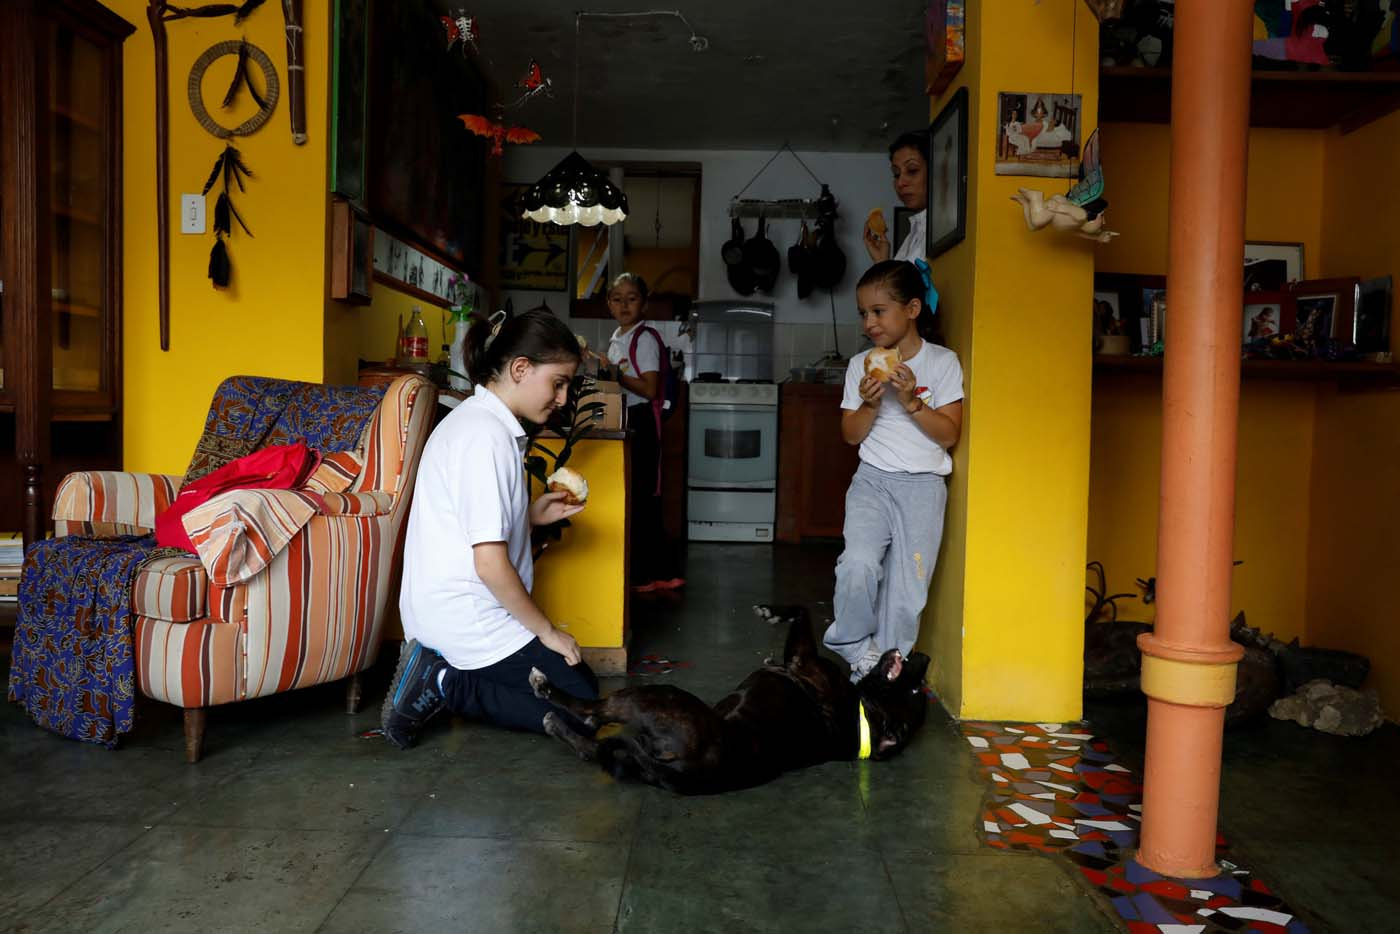 Eloisa Toro (L) and her sisters play with their dog after arriving from school on a day of protests in Caracas, Venezuela June 19, 2017. Picture taken June 19, 2017. REUTERS/Carlos Garcia Rawlins